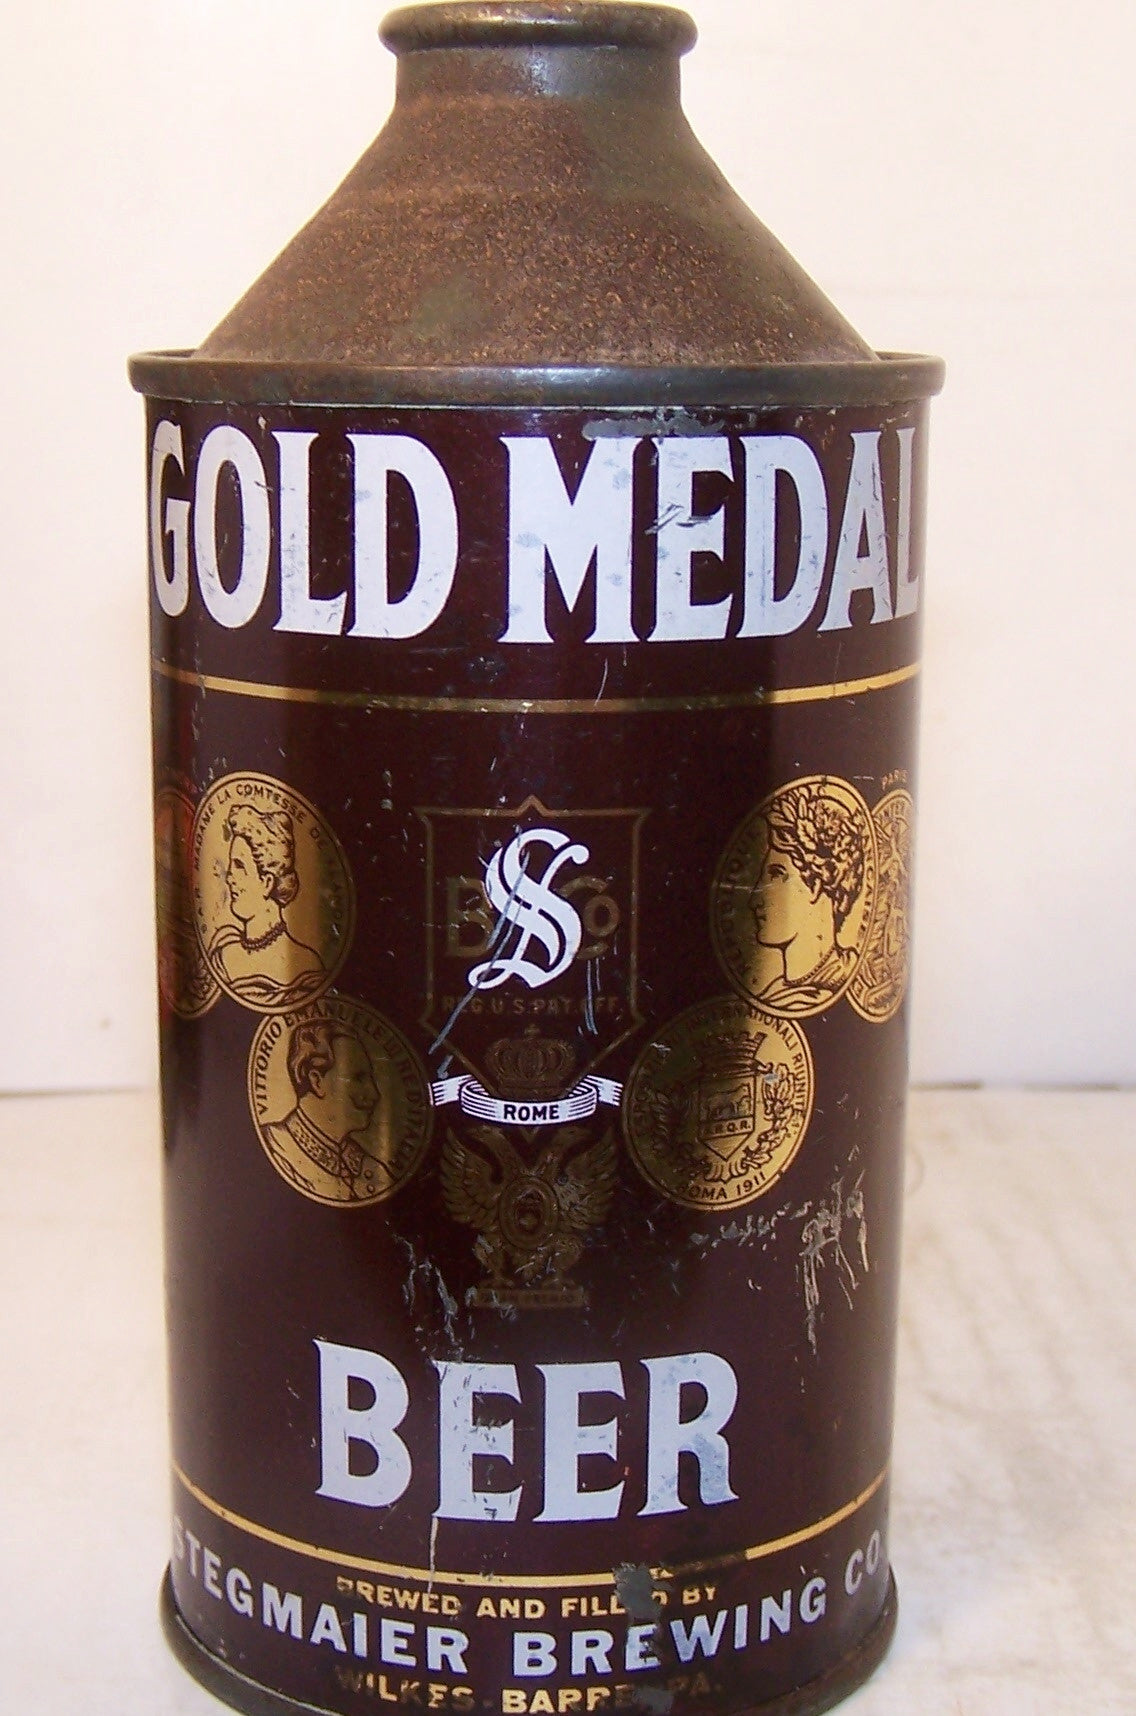 Gold Medal Beer, USBC 165-29, Grade 1- Sold on 03/18/18